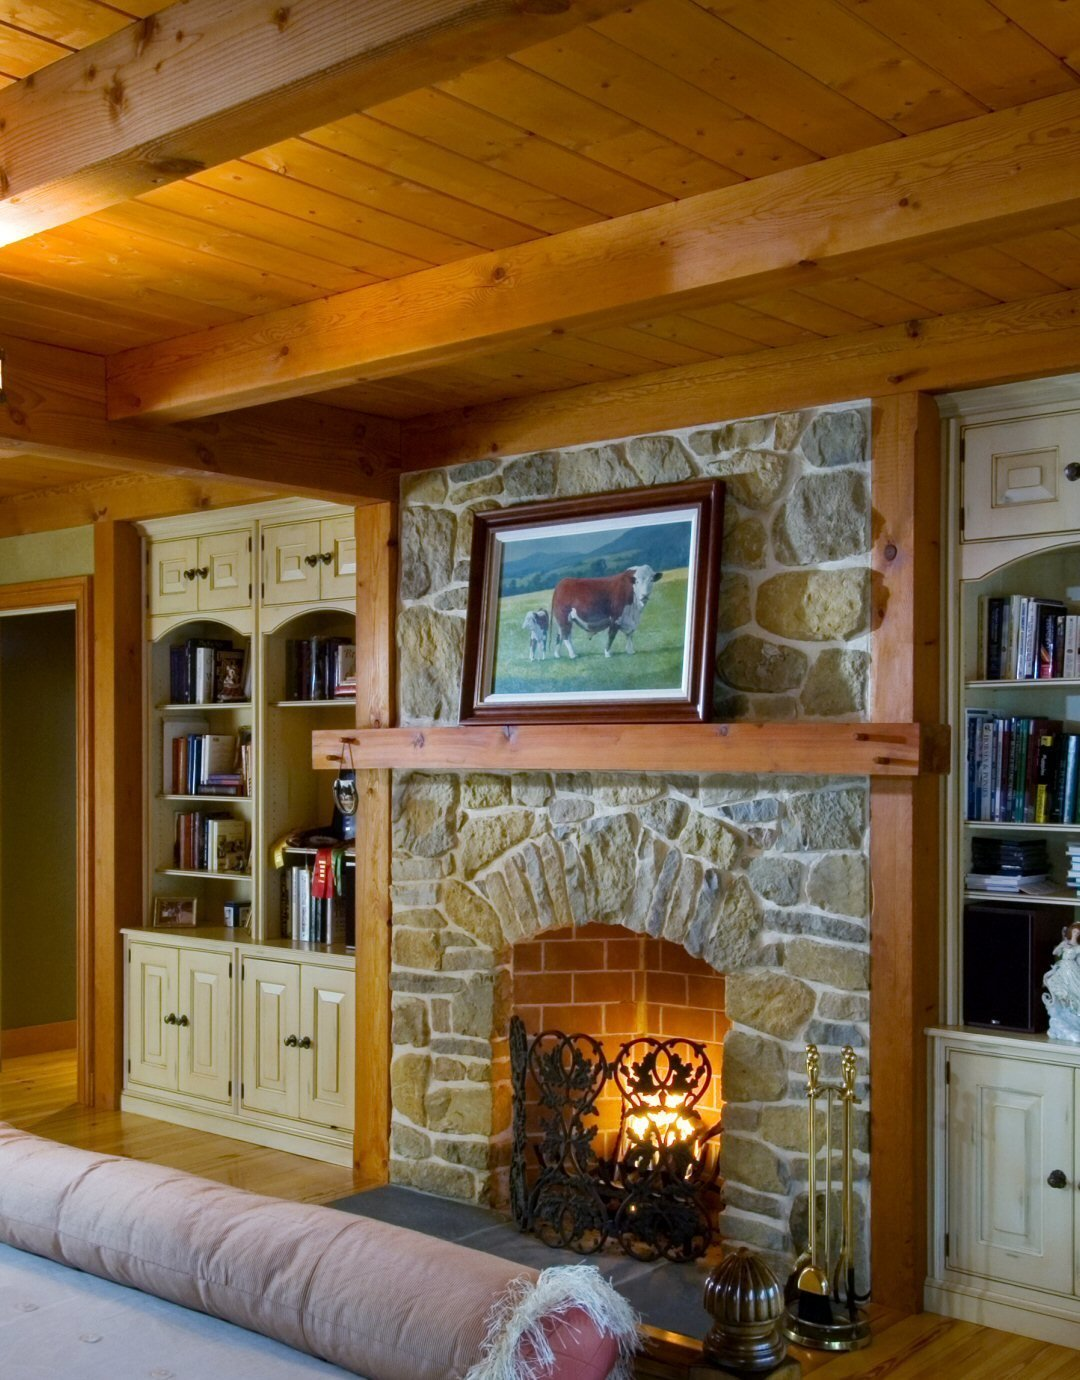 A Cozy Fireplace Adds a Bit of Intimacy to this Master Bedroom Suite  Yellow Brook Farm House by Timberpeg